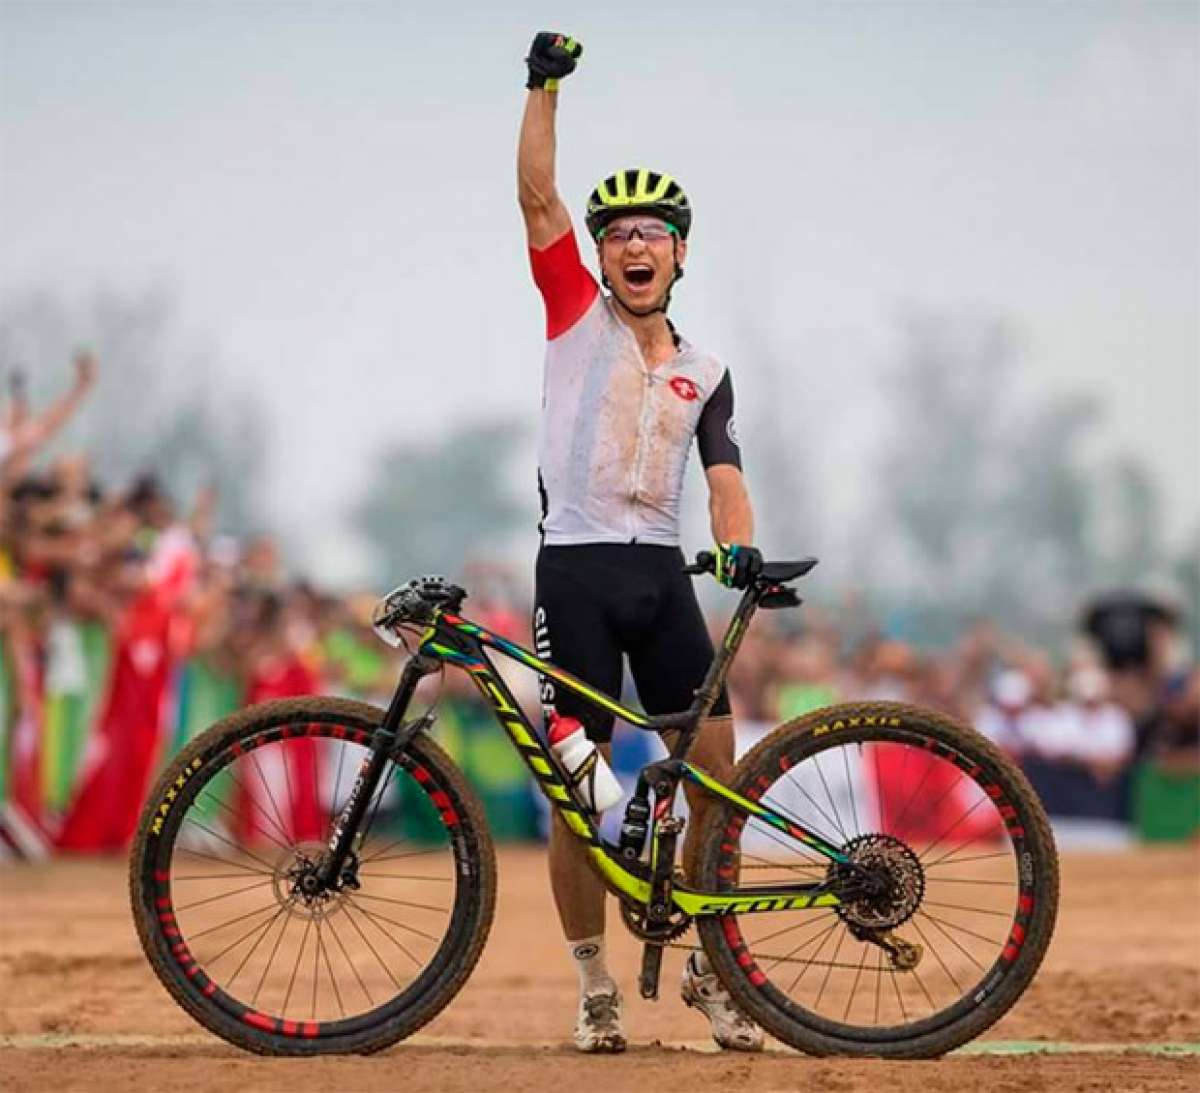 'The Hunt for Glory - Capítulo 14', así ha conseguido Nino Schurter su oro olímpico